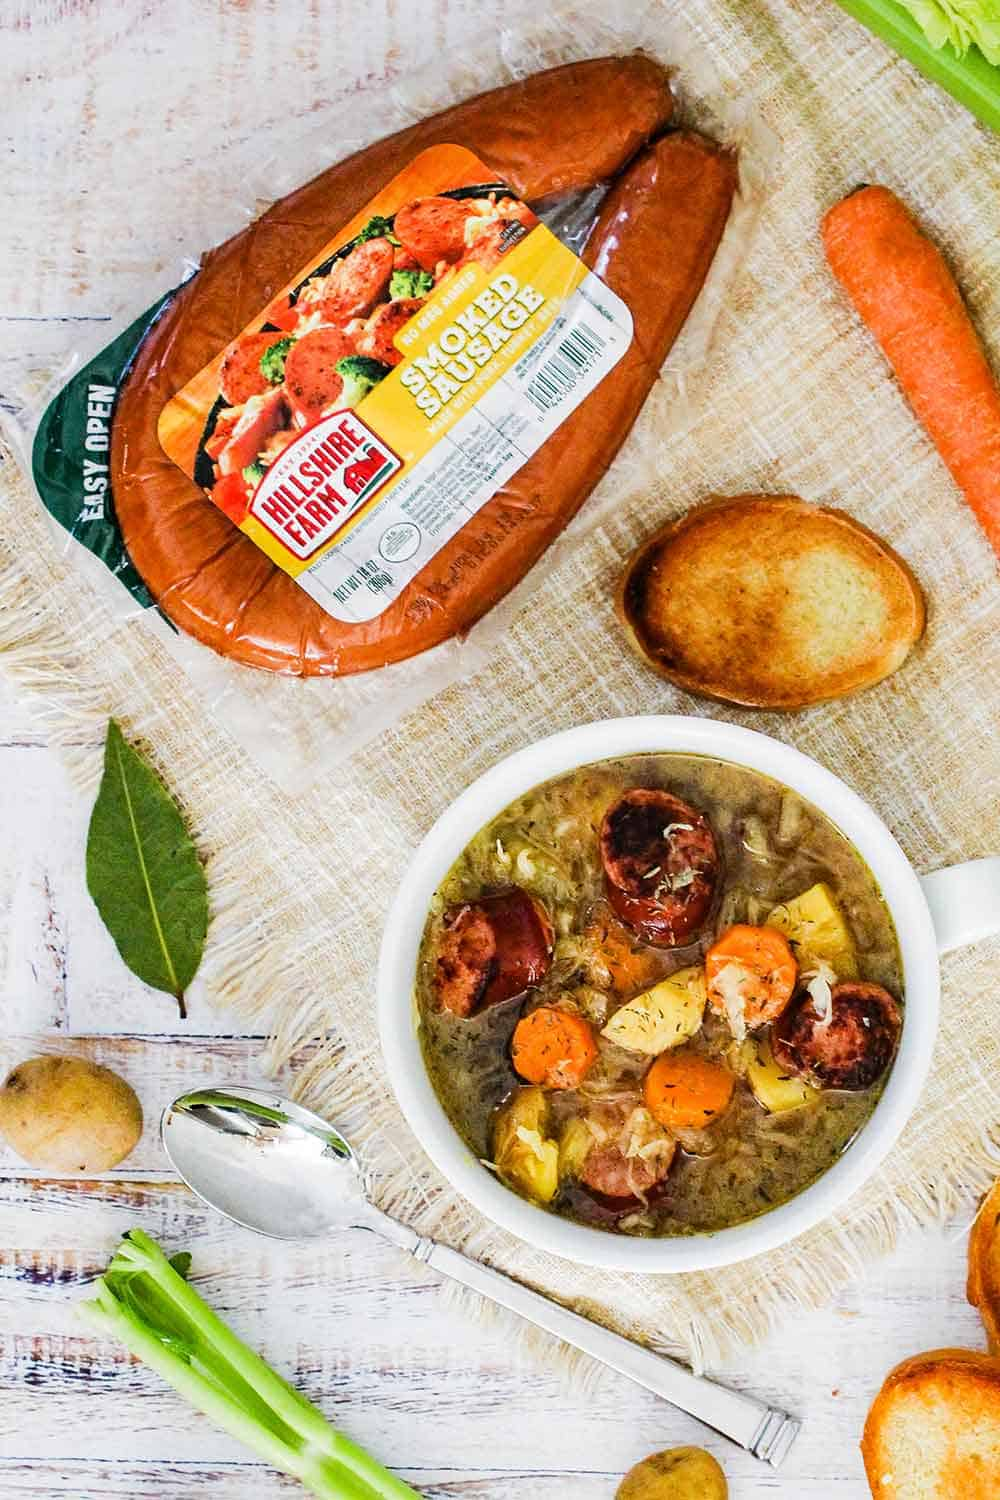 An overhead view of a package of smoked sausage next to a bowl of smoked sausage stew surrounded by vegetables on a white board.